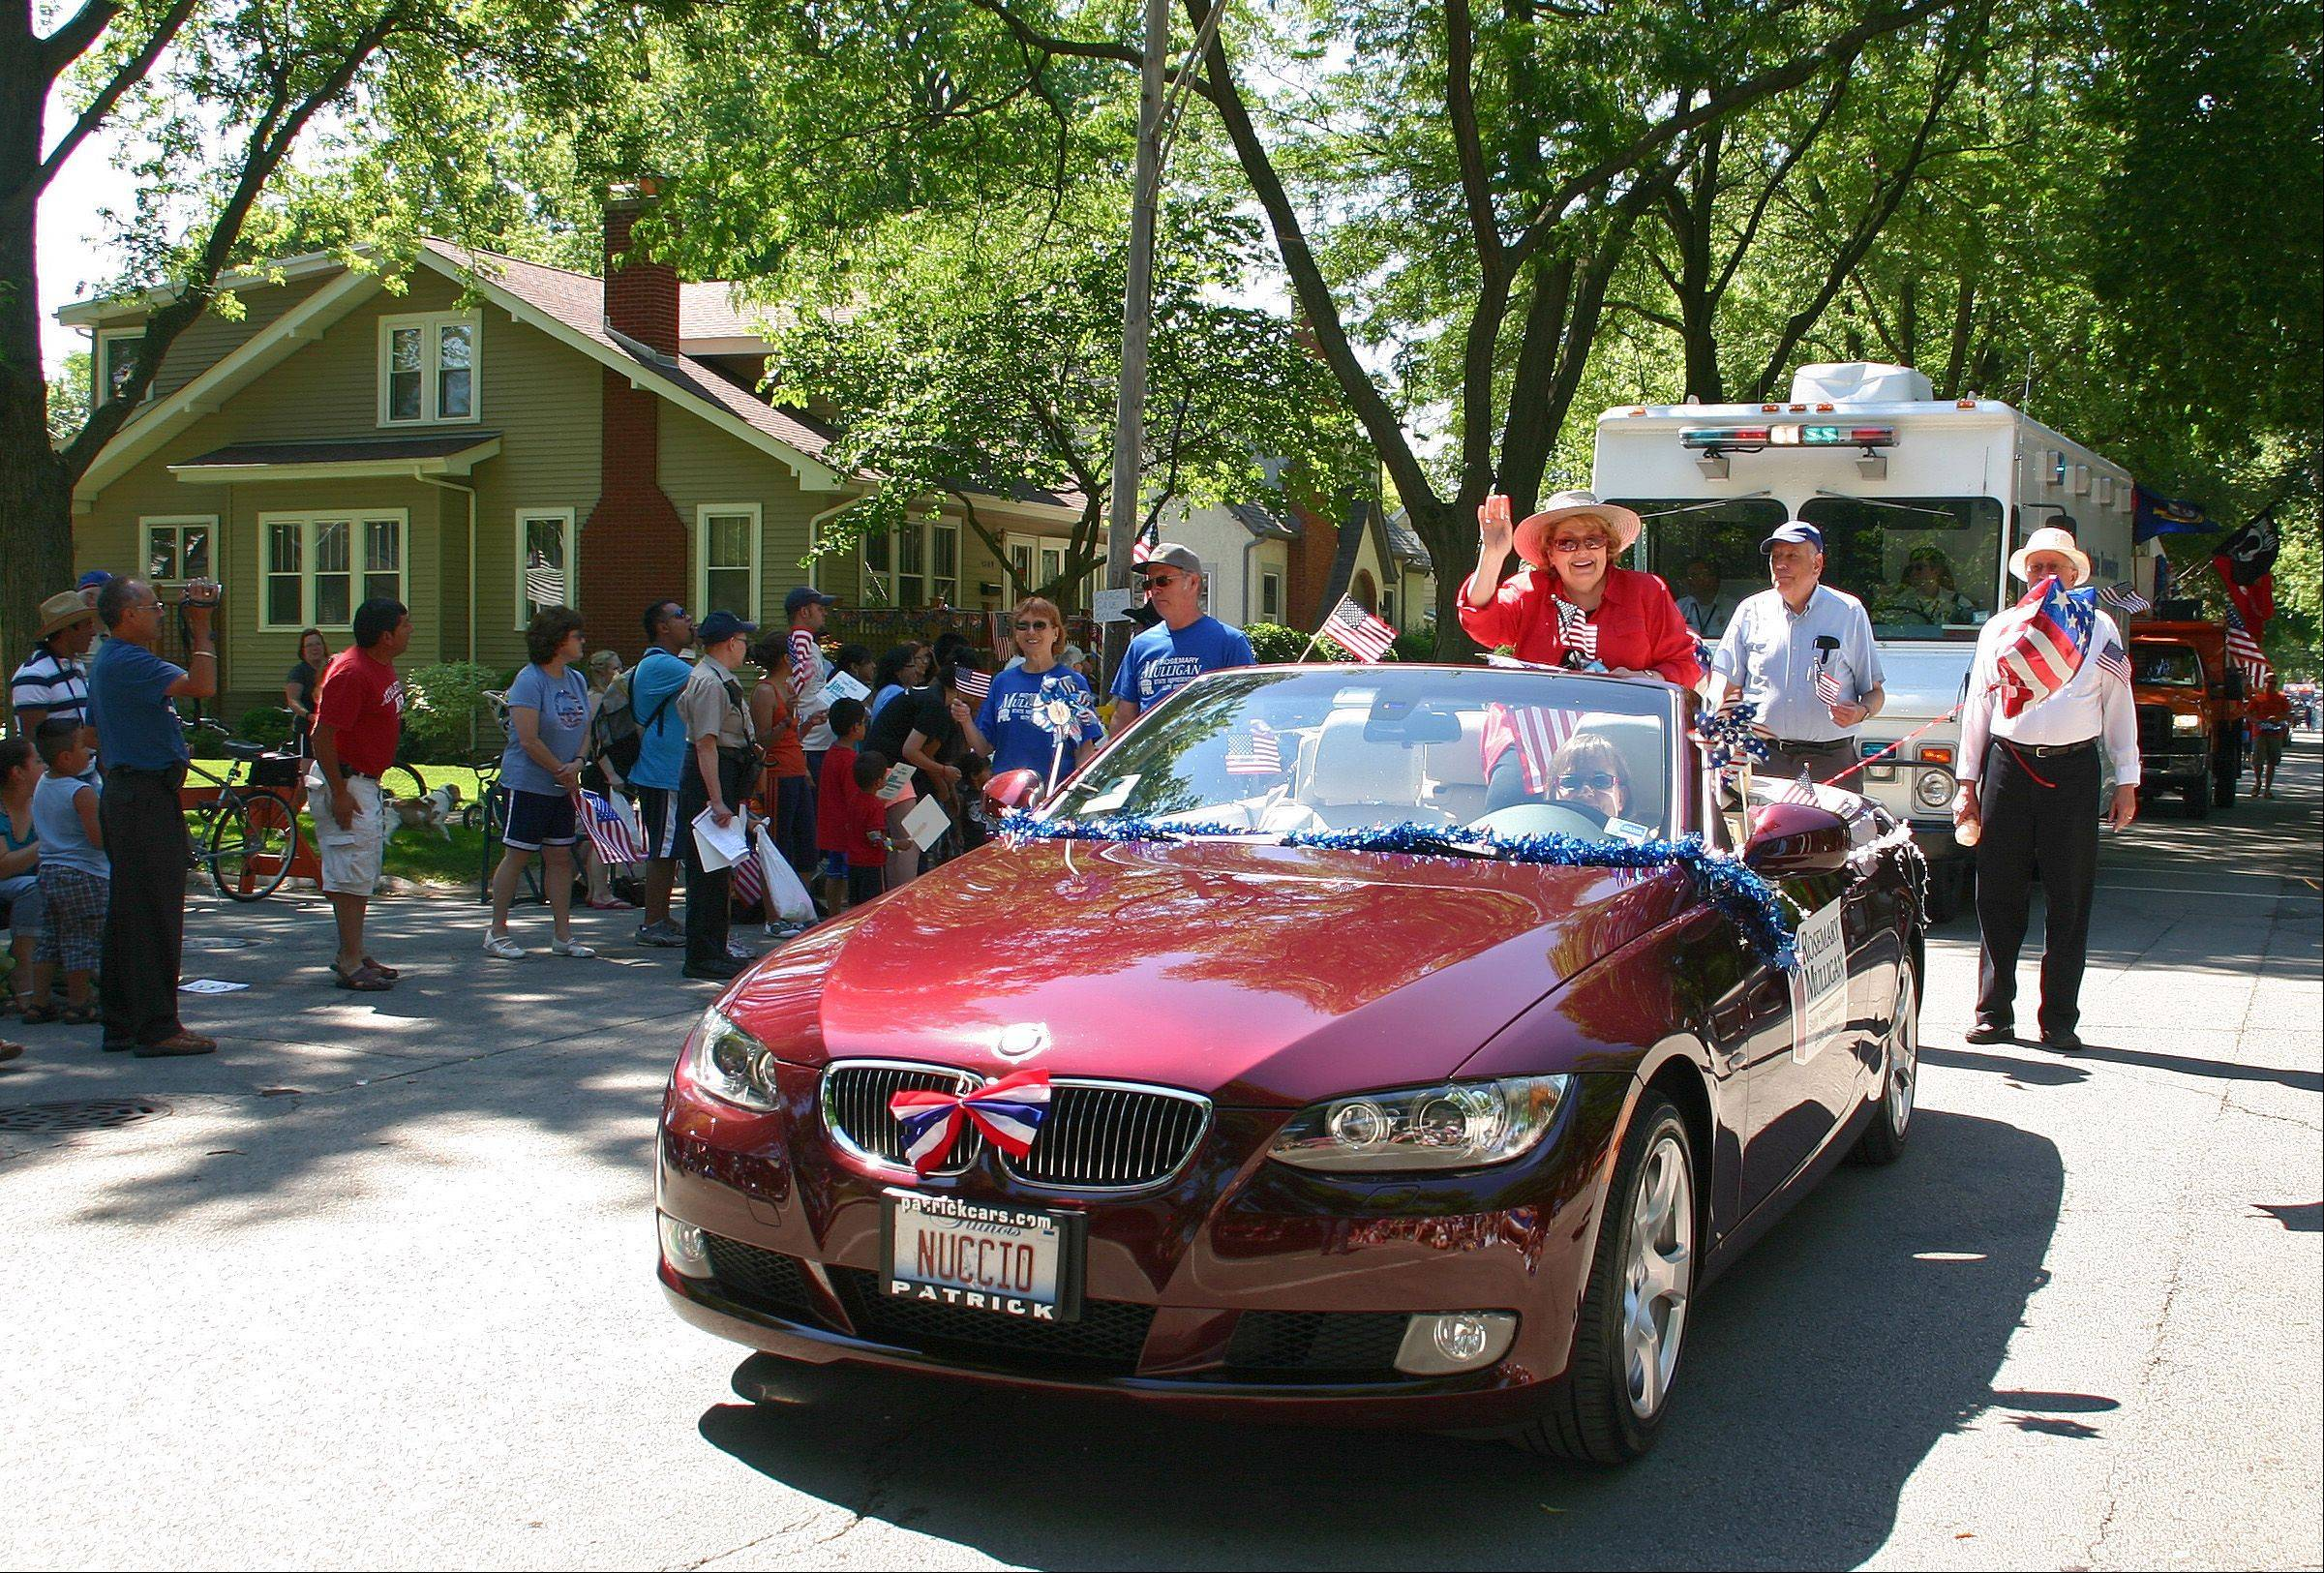 State Representative Rosemary Mulligan, 65th district, rides in the Des Plaines 2011 Independence Day Parade Monday, July 4, 2011.